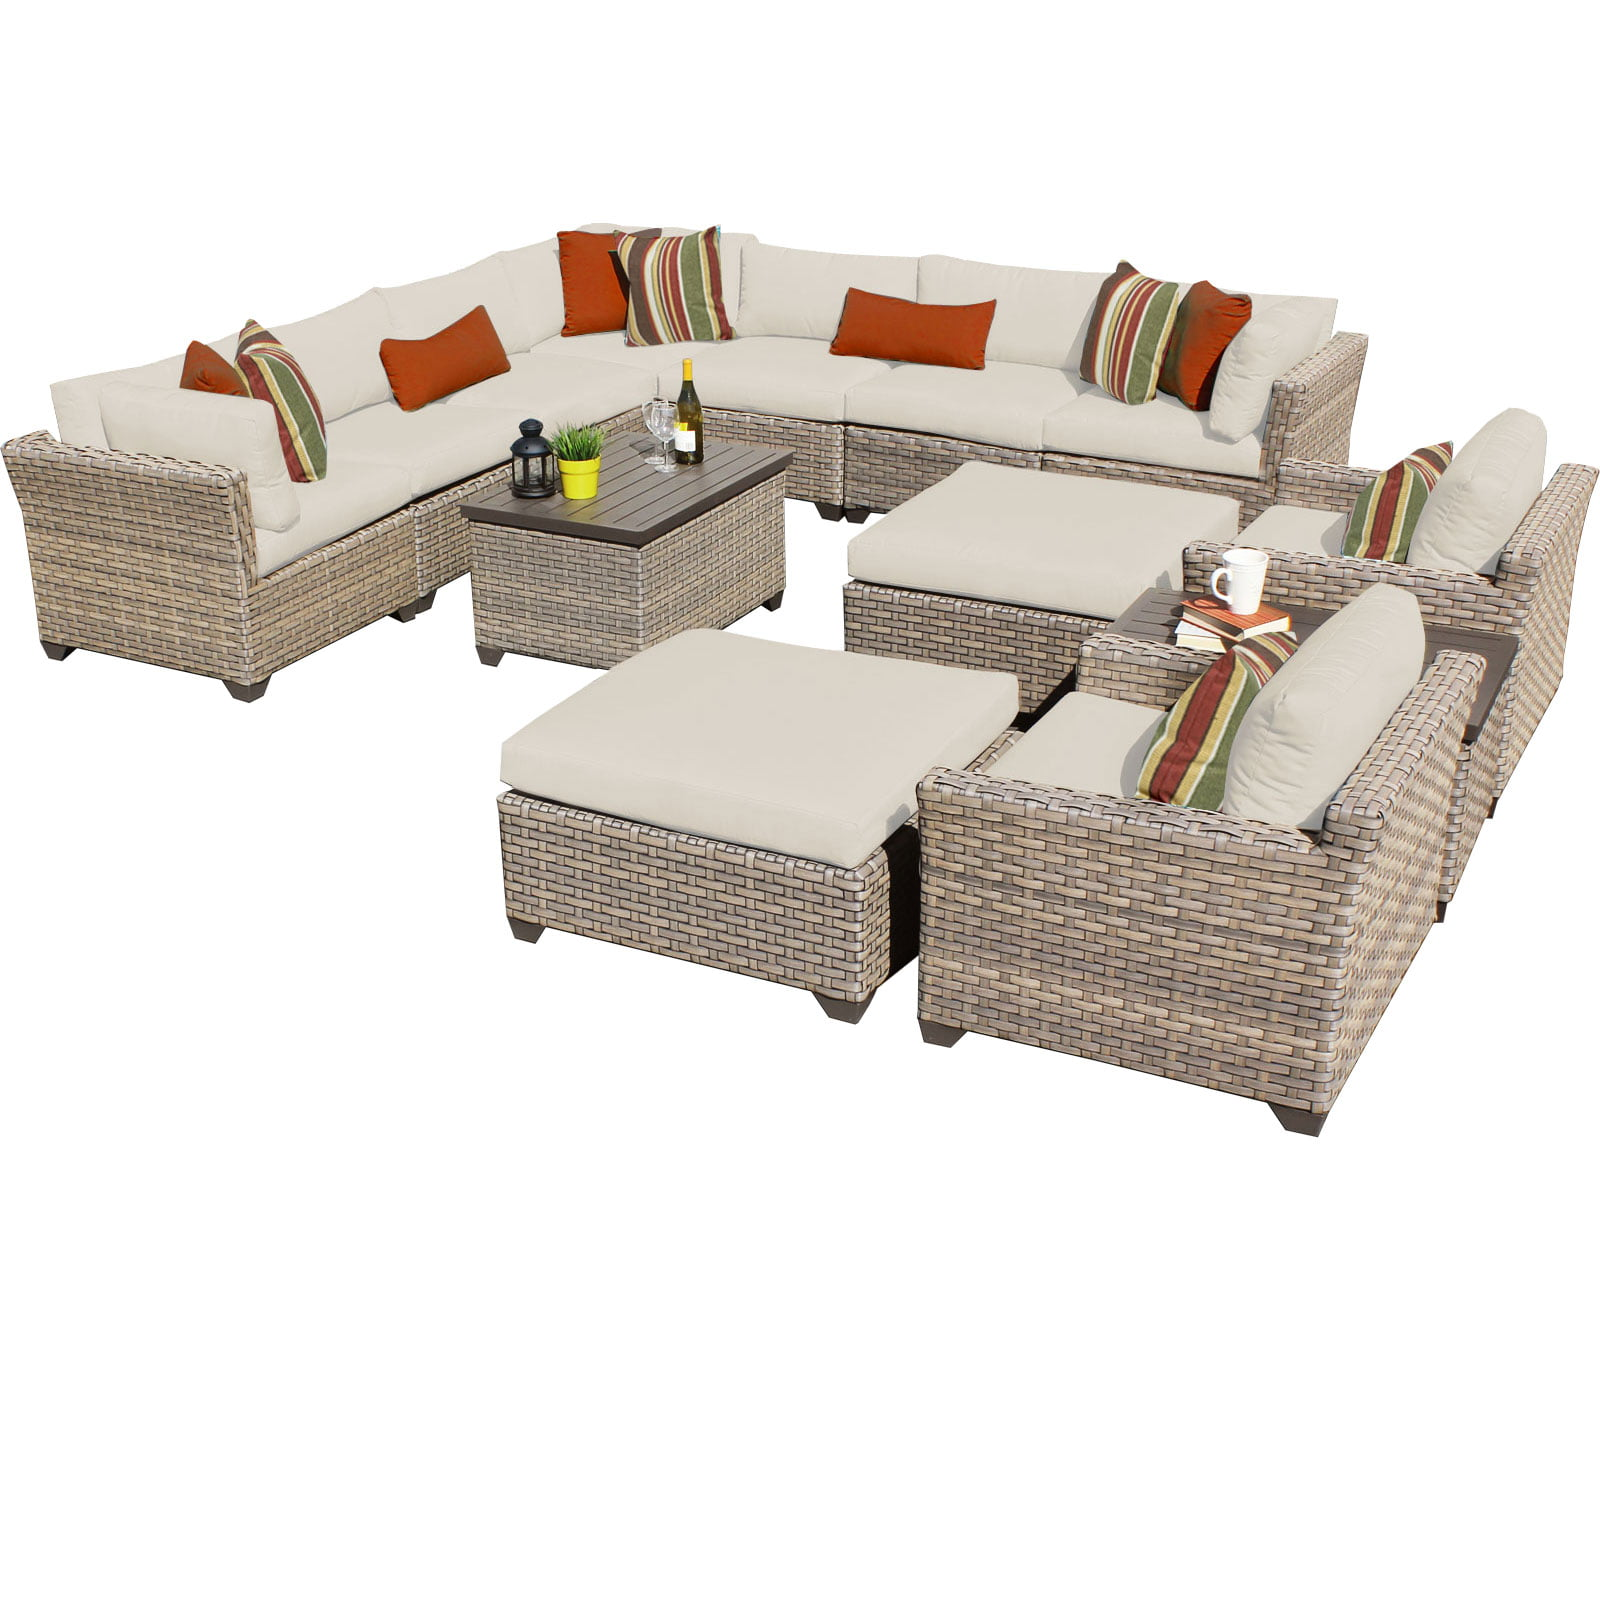 Hampton 13 Piece Outdoor Wicker Patio Furniture Set 13a by TK Classics